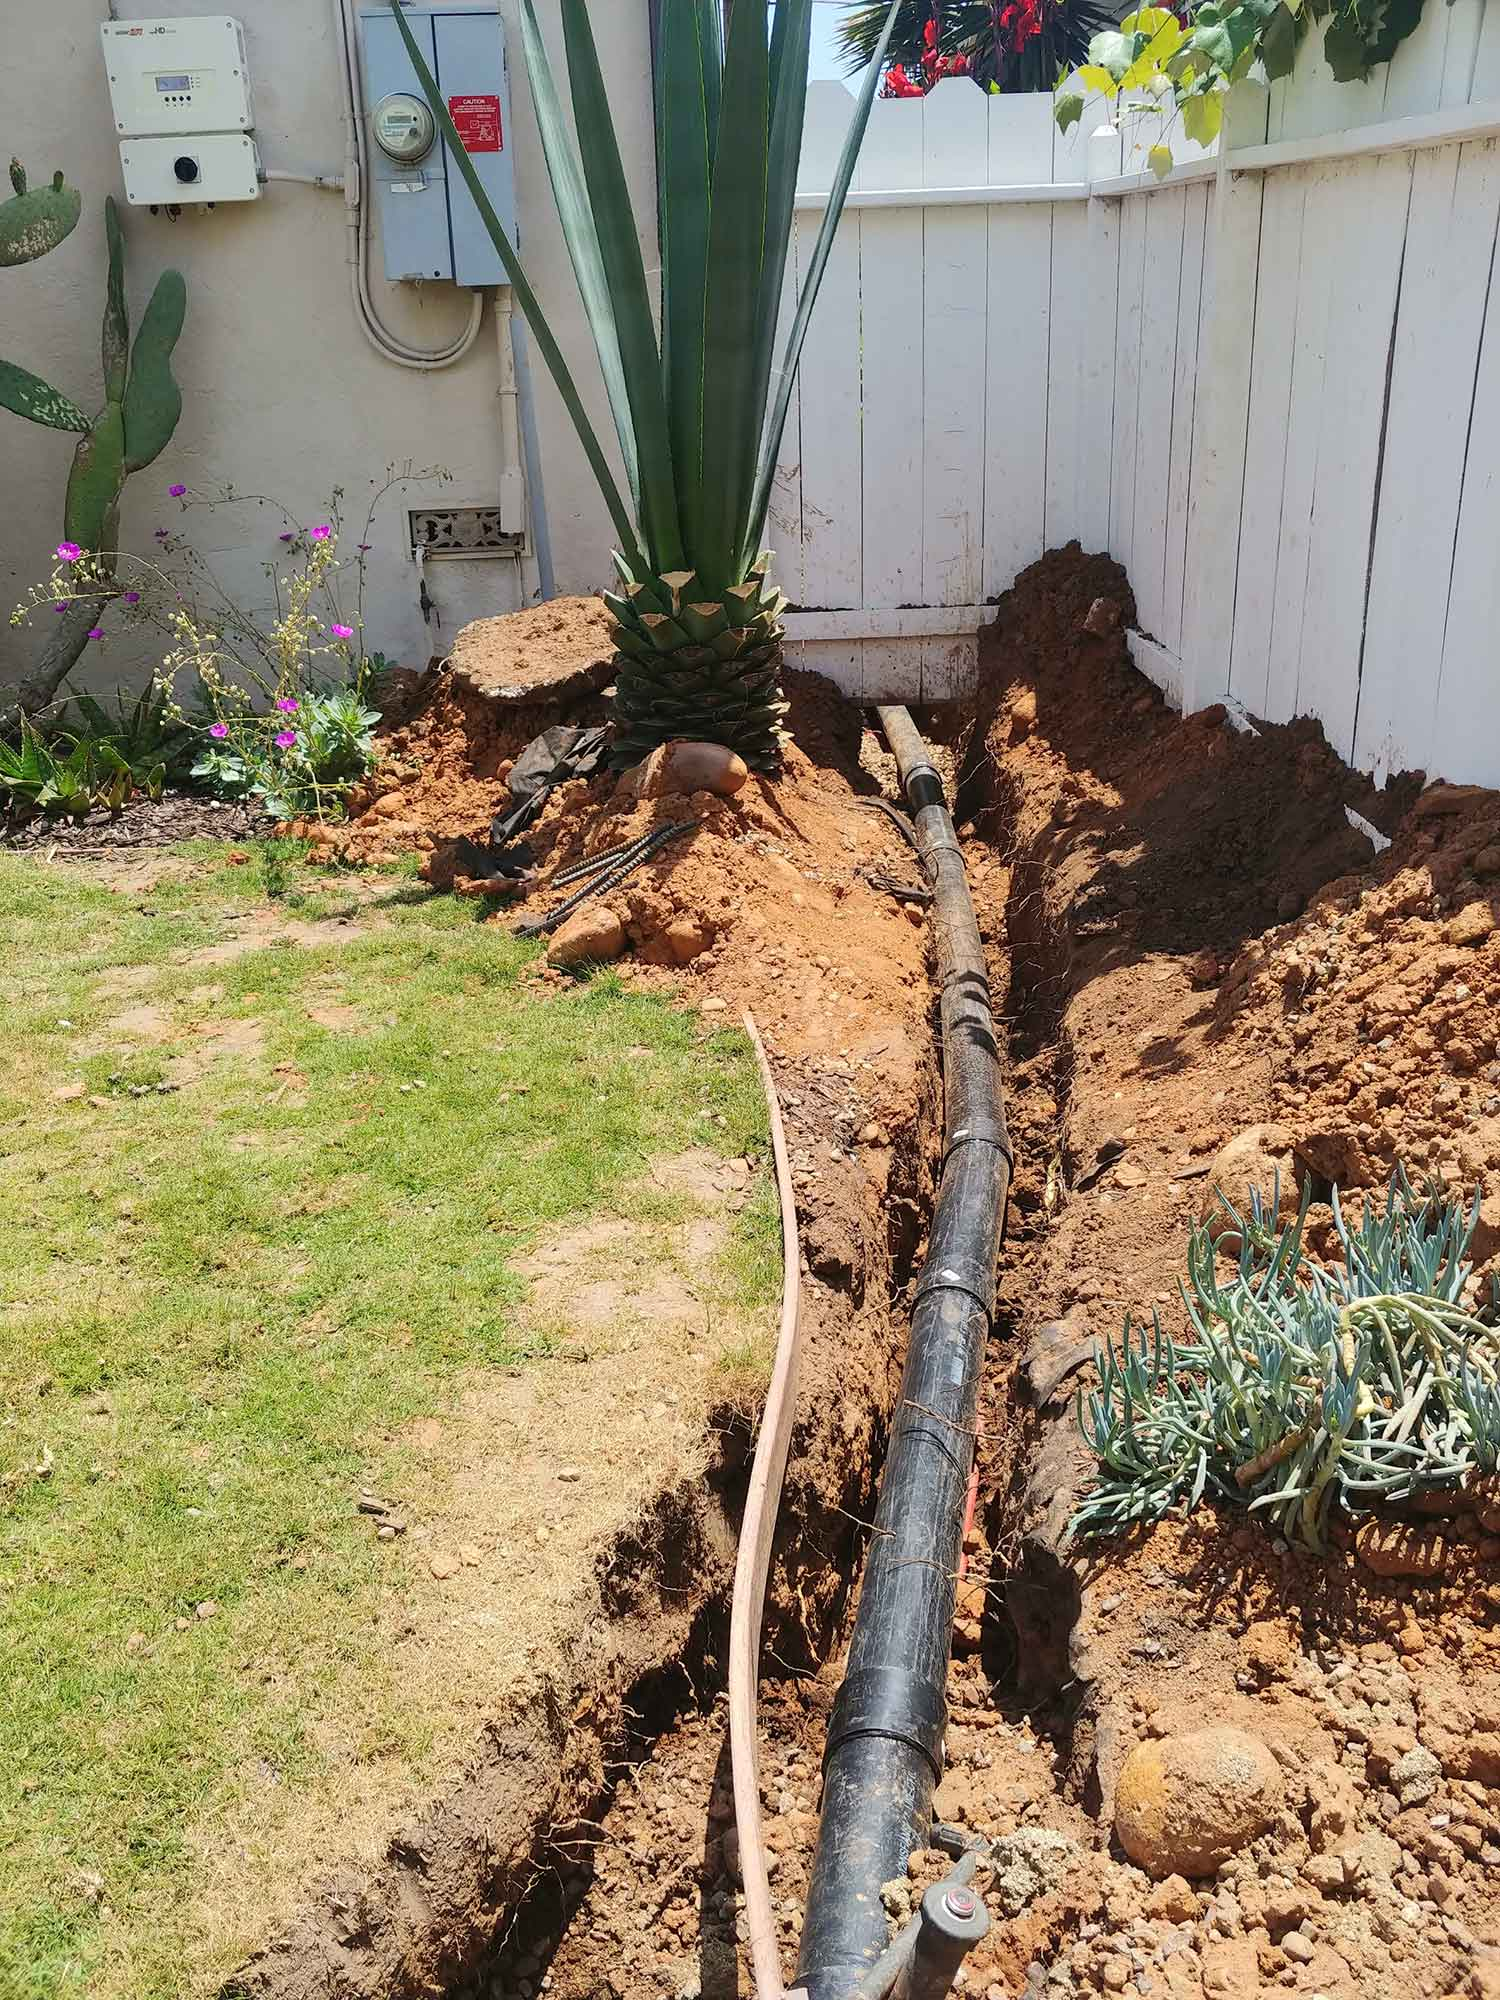 sewer line under fence